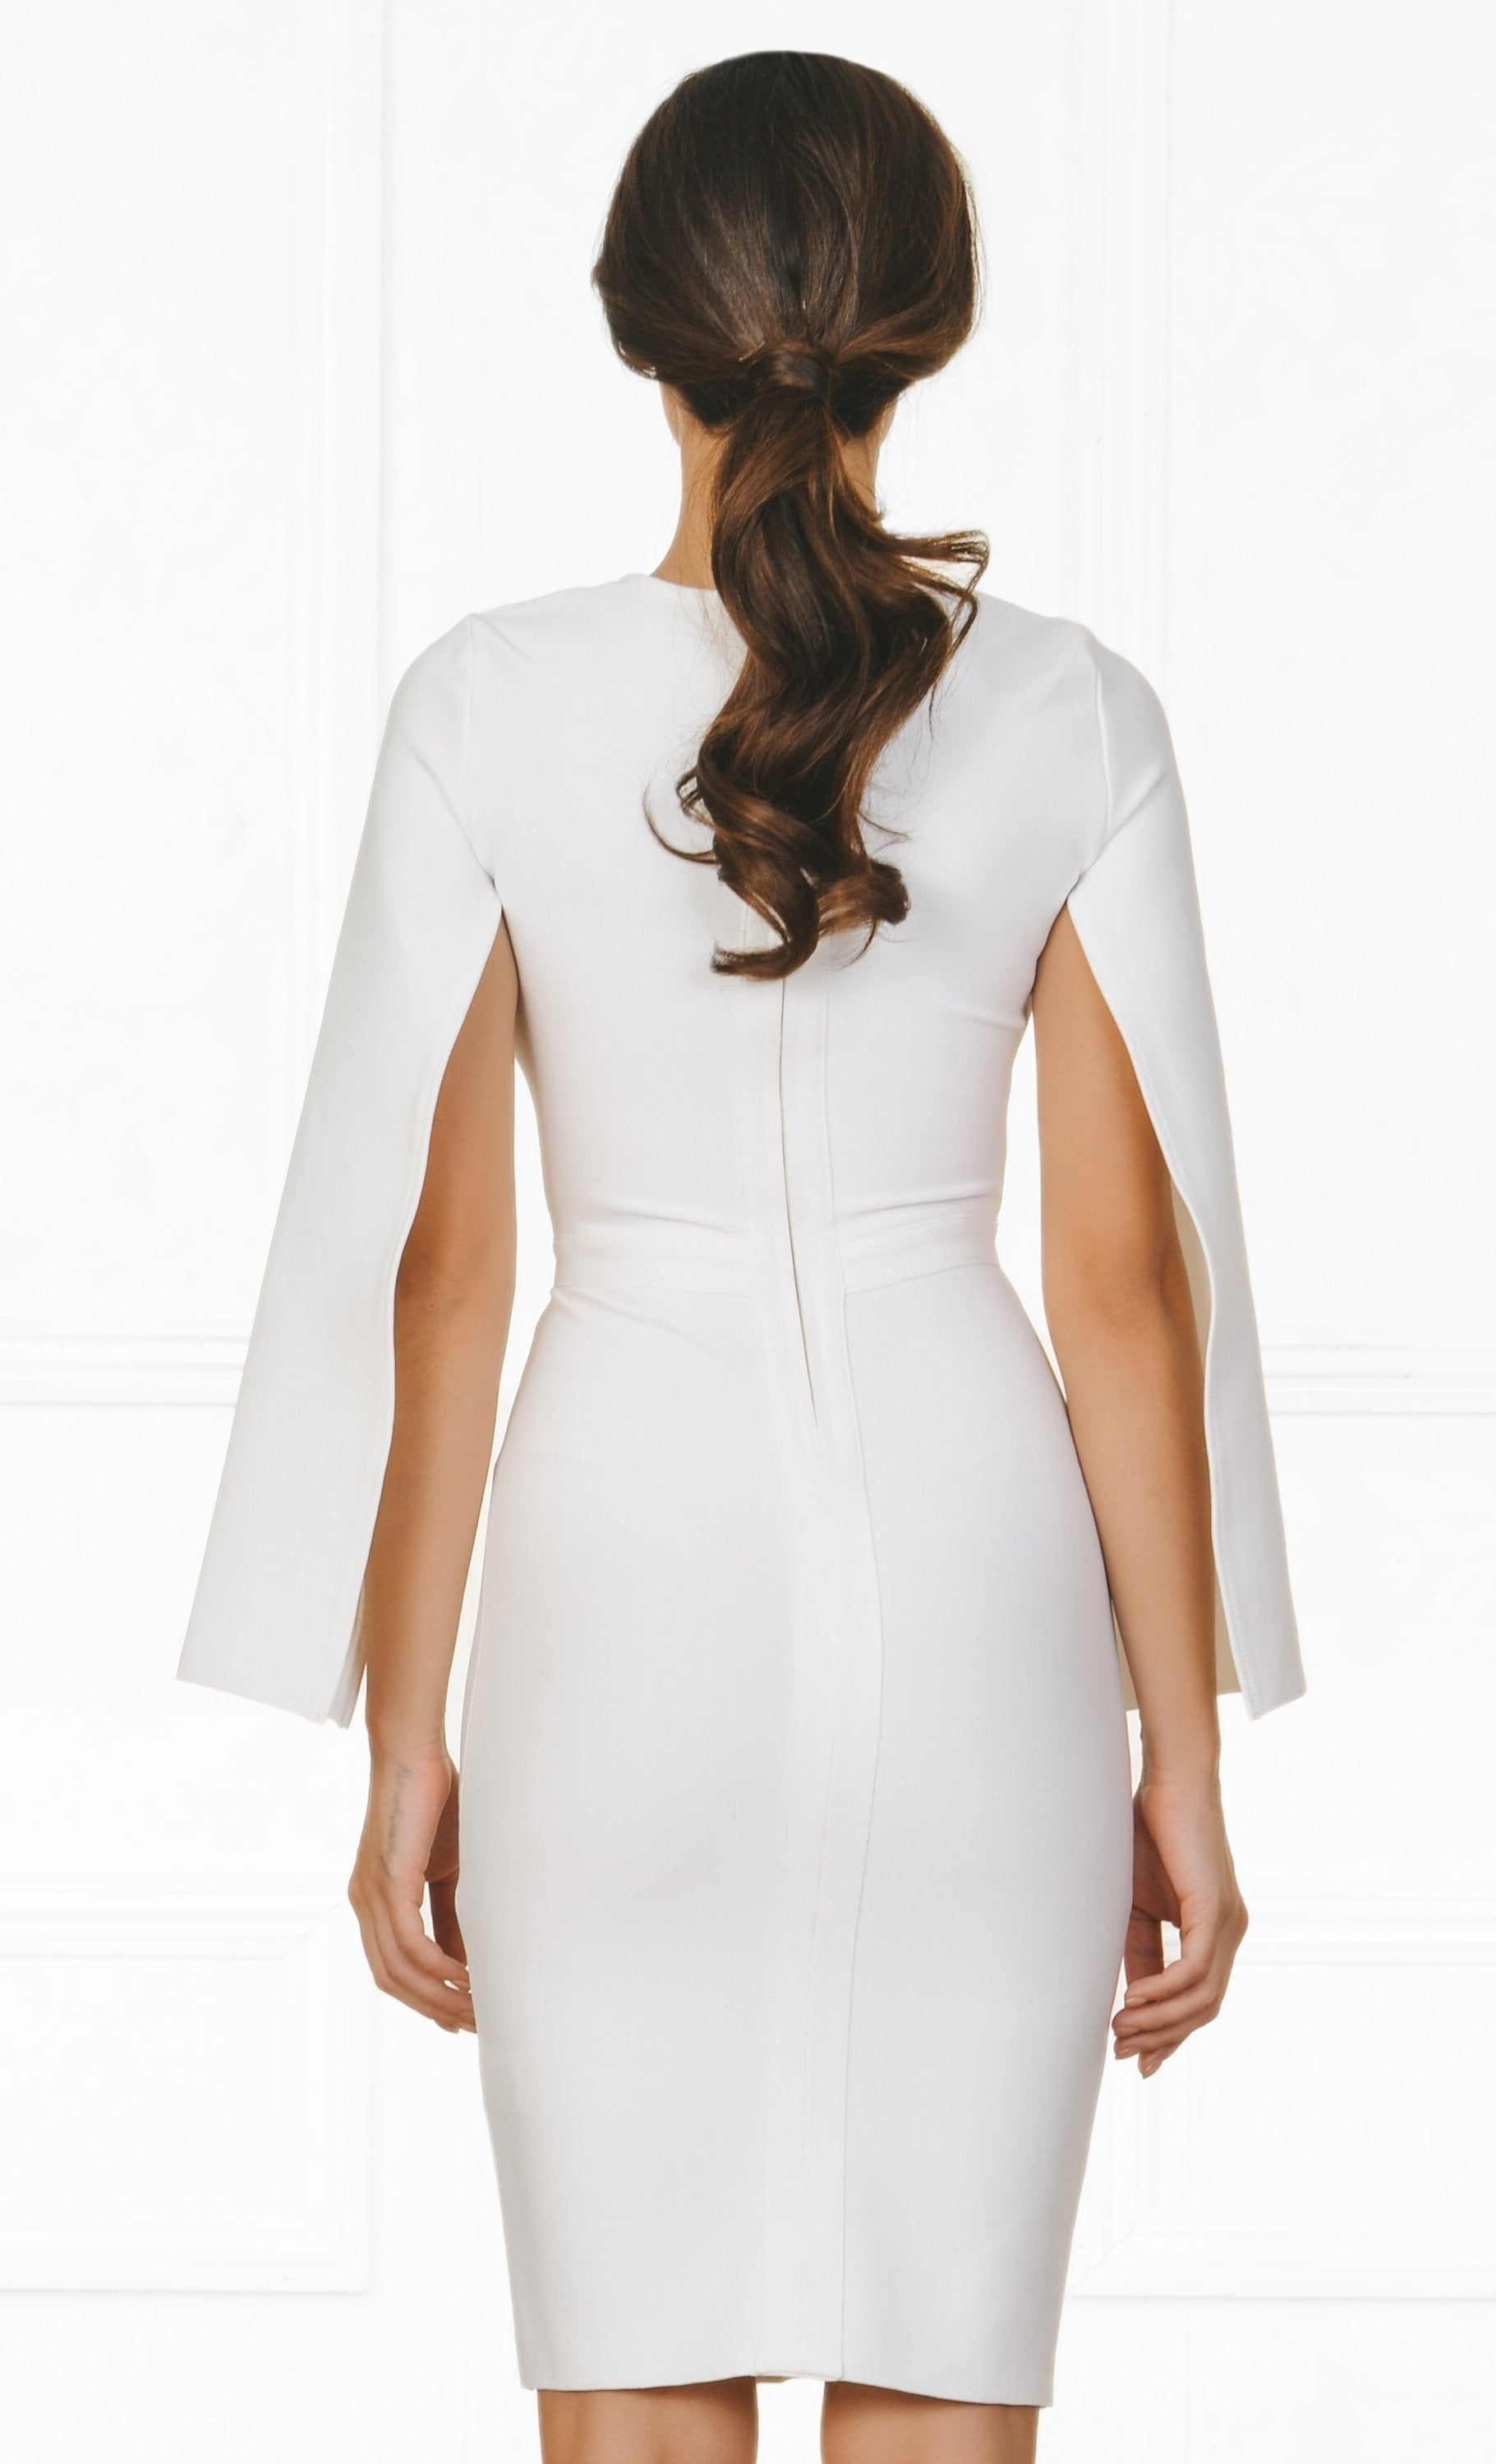 Indie XO Midnight Scandal White Long Slit Sleeve Scoop Neck Bandage Bodycon Cape Midi Dress - Sold Out